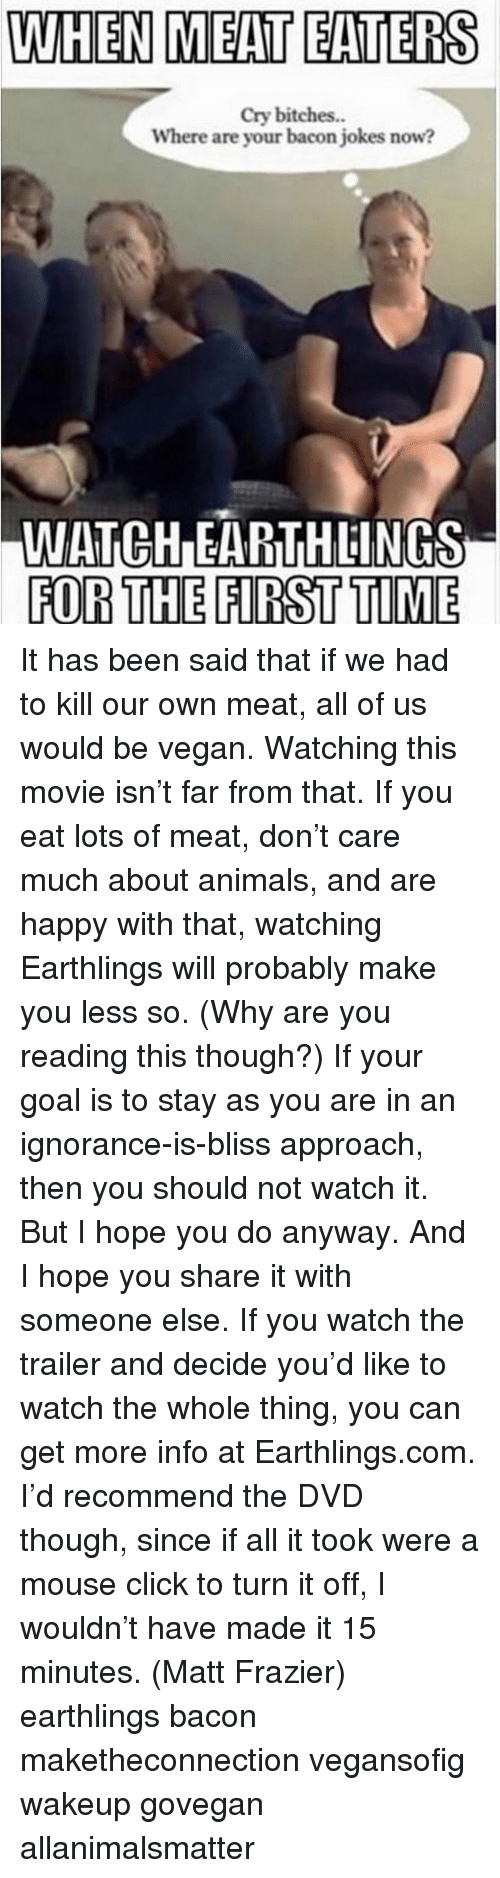 Bacon Jokes: WHEN MEAT EATERS  cry bitches.  Where are your bacon jokes now?  IWATCHDEARTHLINGS  FOR THE FIRST TIME It has been said that if we had to kill our own meat, all of us would be vegan. Watching this movie isn't far from that. If you eat lots of meat, don't care much about animals, and are happy with that, watching Earthlings will probably make you less so. (Why are you reading this though?) If your goal is to stay as you are in an ignorance-is-bliss approach, then you should not watch it. But I hope you do anyway. And I hope you share it with someone else. If you watch the trailer and decide you'd like to watch the whole thing, you can get more info at Earthlings.com. I'd recommend the DVD though, since if all it took were a mouse click to turn it off, I wouldn't have made it 15 minutes. (Matt Frazier) earthlings bacon maketheconnection vegansofig wakeup govegan allanimalsmatter